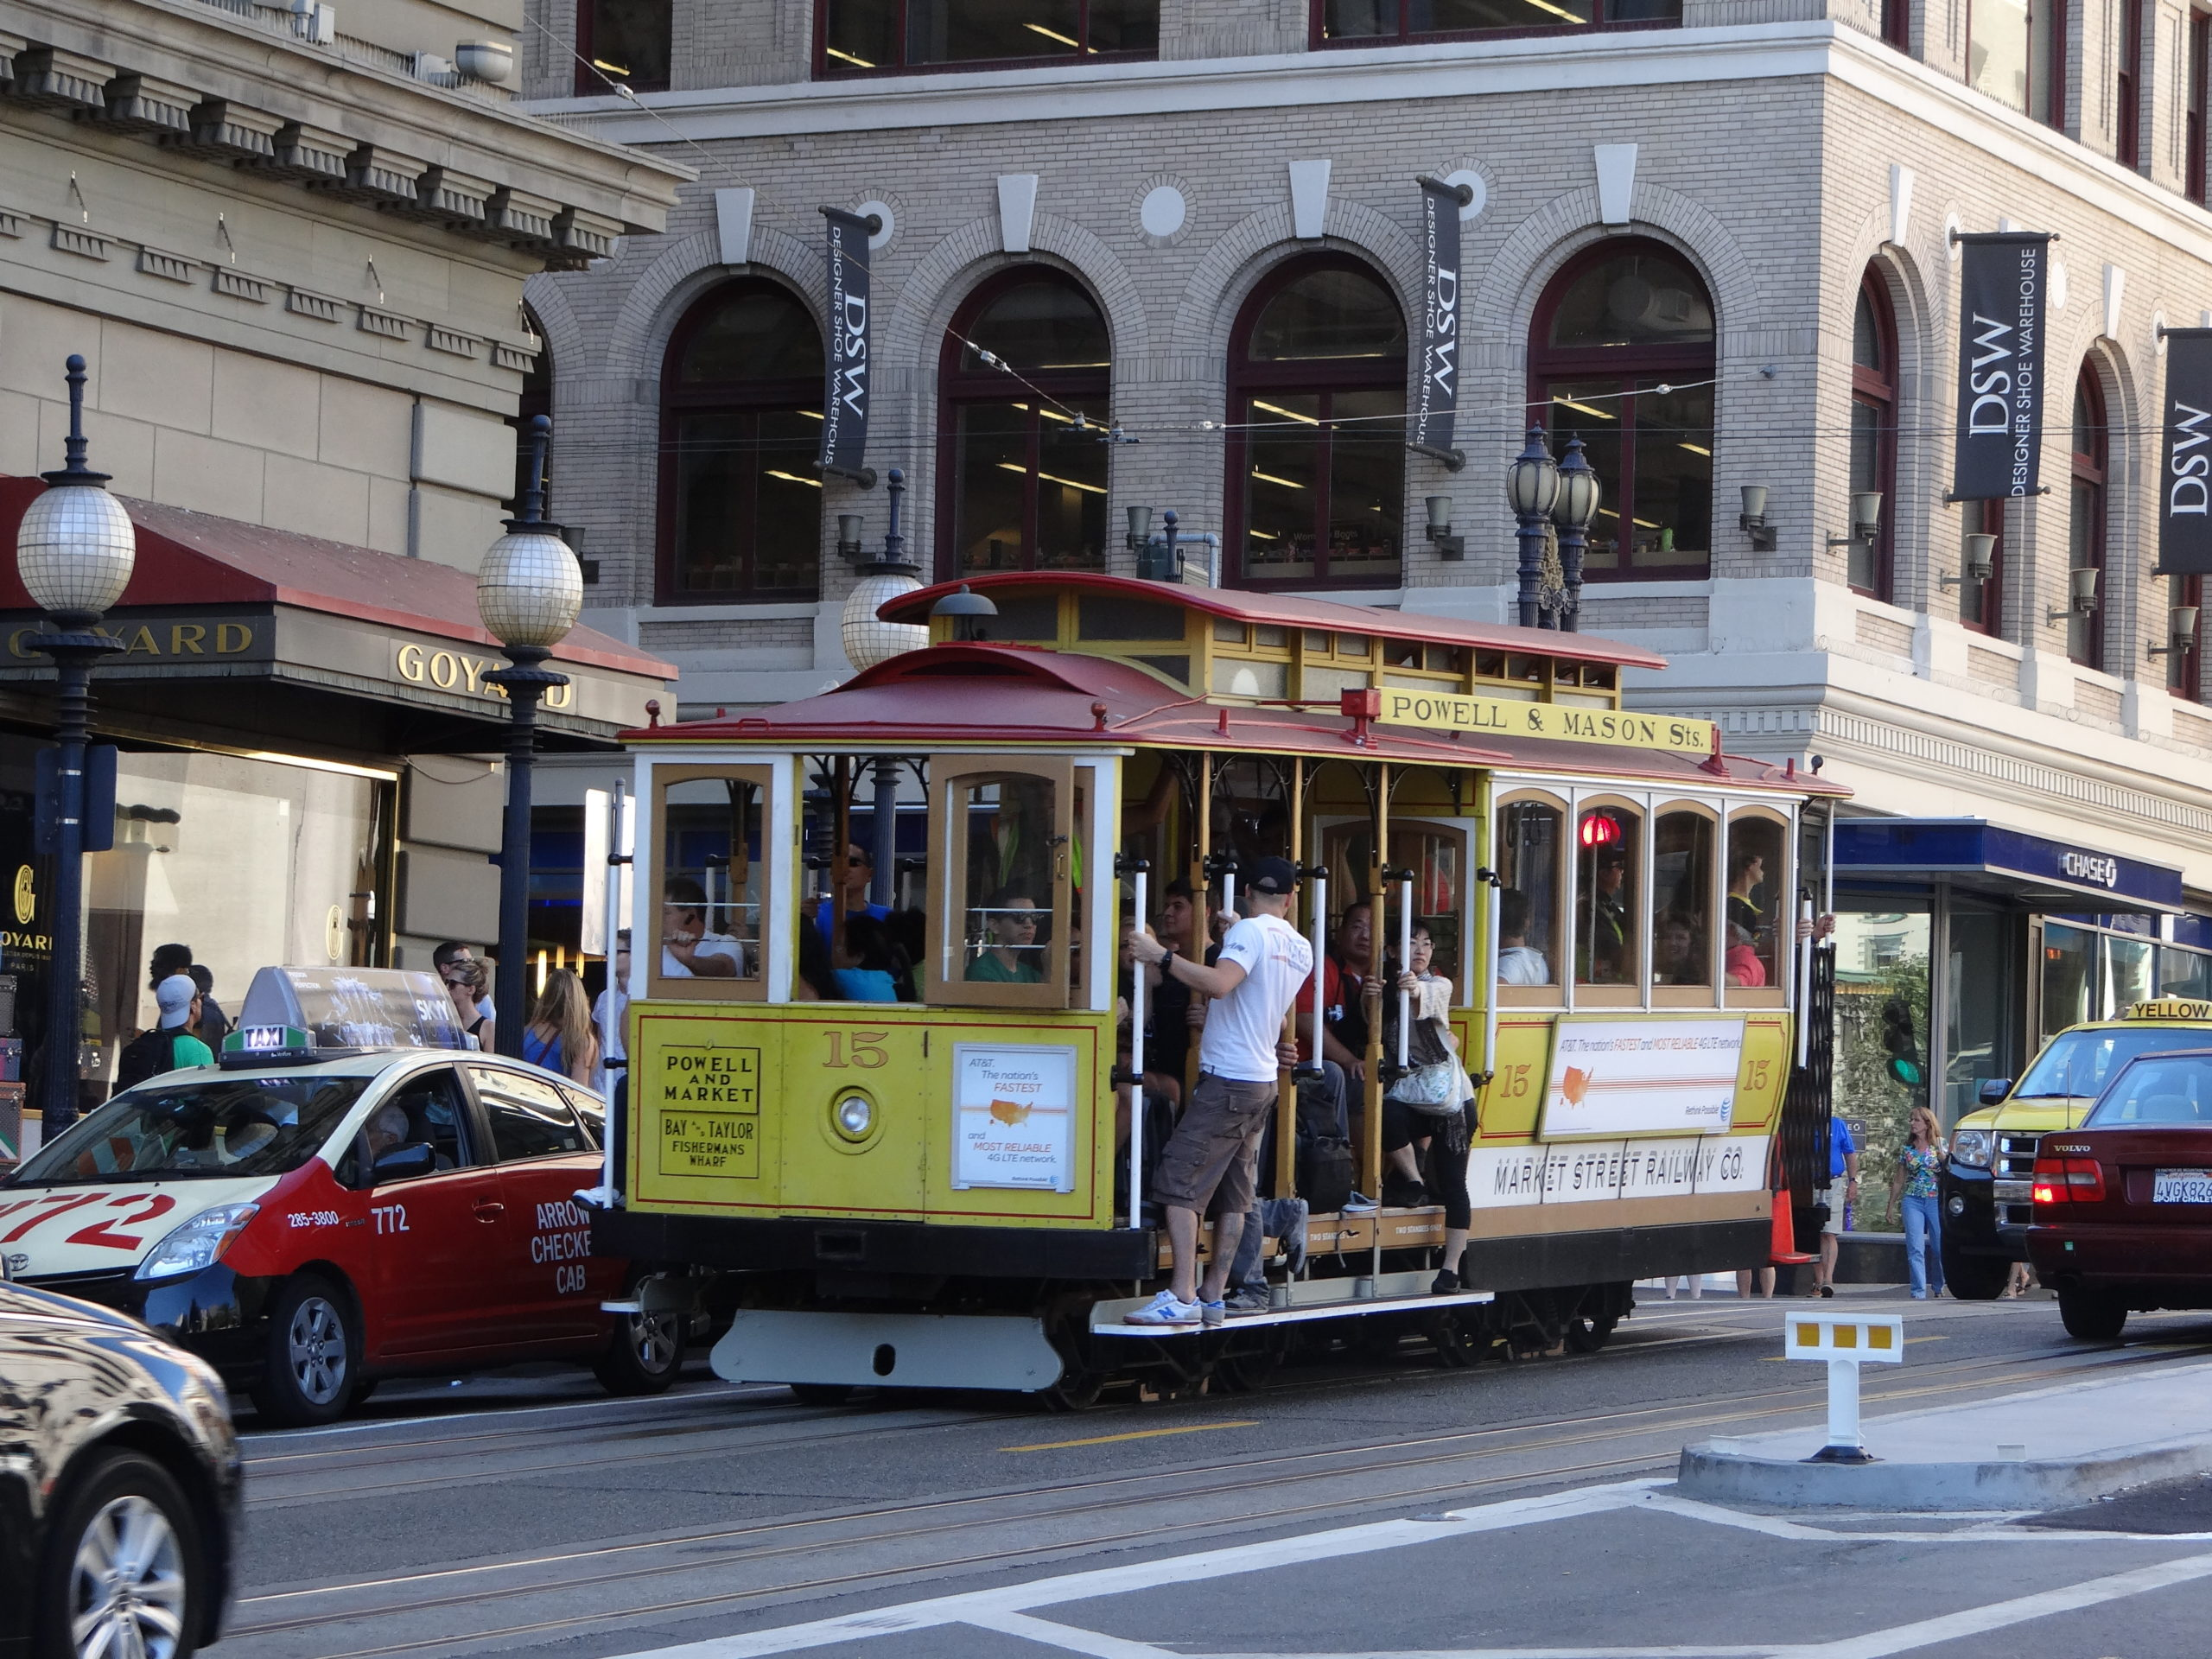 Riding the Cable Car in San Francisco